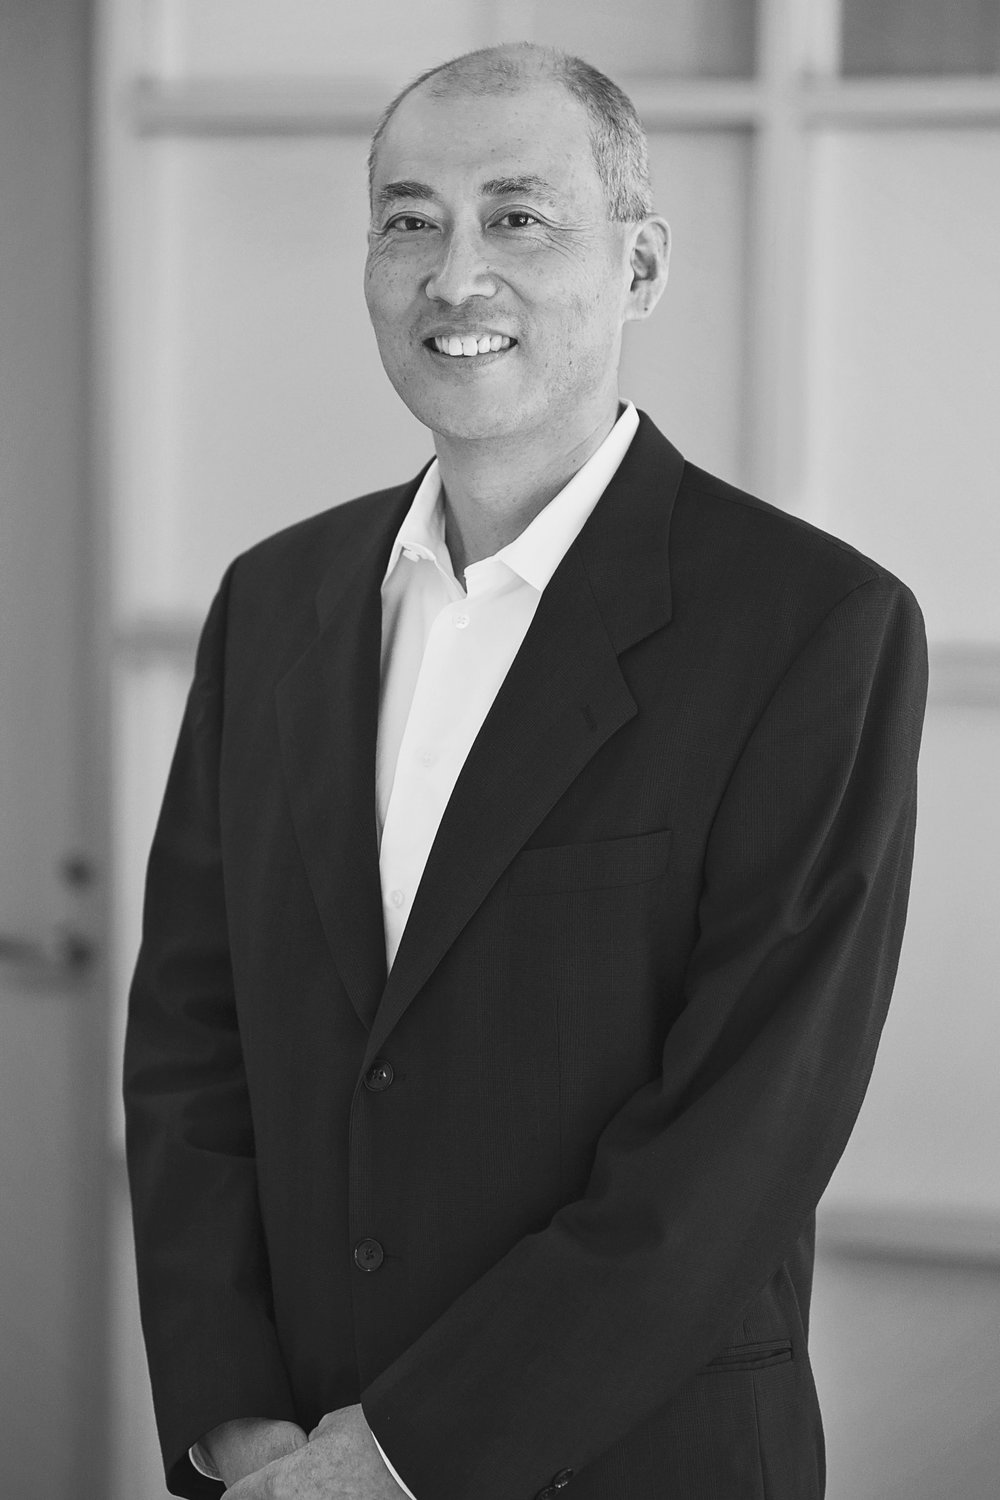 Bill Fang has more than 30 years of experience in engineering and engineering management, including ASIC design, board design, system design, and engineering team management.     While at Raytheon E-Systems (1985-1996), Bill led a team of engineers in developing the first Fiber Channel-Based (ANSI X3T11) network, which was specifically designed to transfer digital video and data in real time.     In 1996, Bill joined the STB group as the Director of Engineering and led the team into a new technology area of digital video. He developed Enseo's first MPEG decoder products and digital video/graphic overlay cards.     Today, Bill continues to lead the engineering team in developing digital video and graphic products for the professional broadcasting market.     Bill earned his BSEE from the University of Texas at Austin and his MSEE from Southern Methodist University.